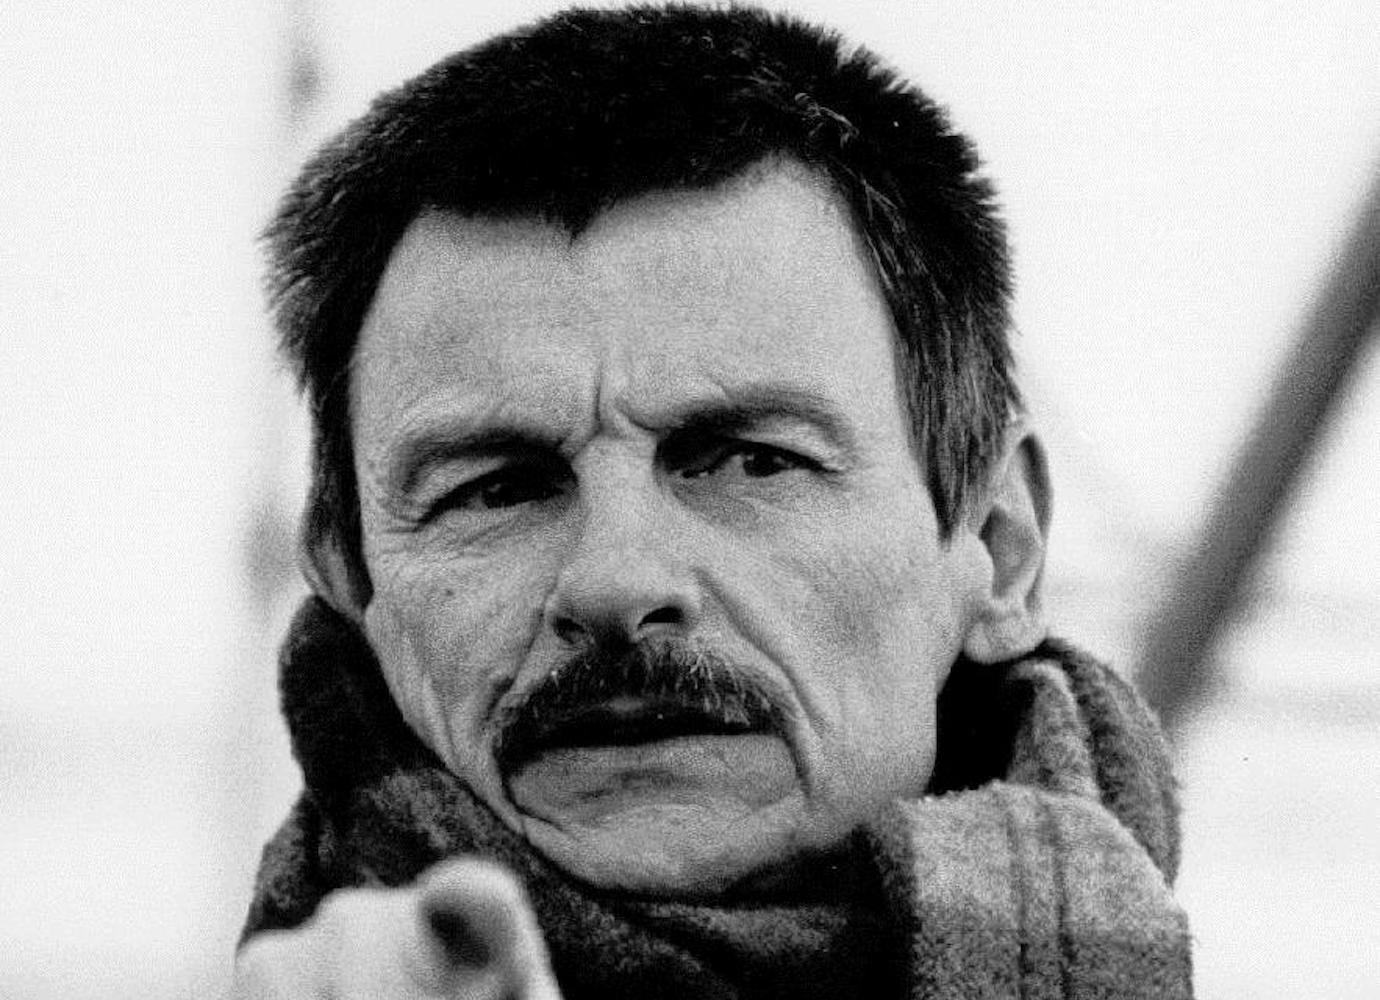 Andrei Tarkovsky: where to start with his films